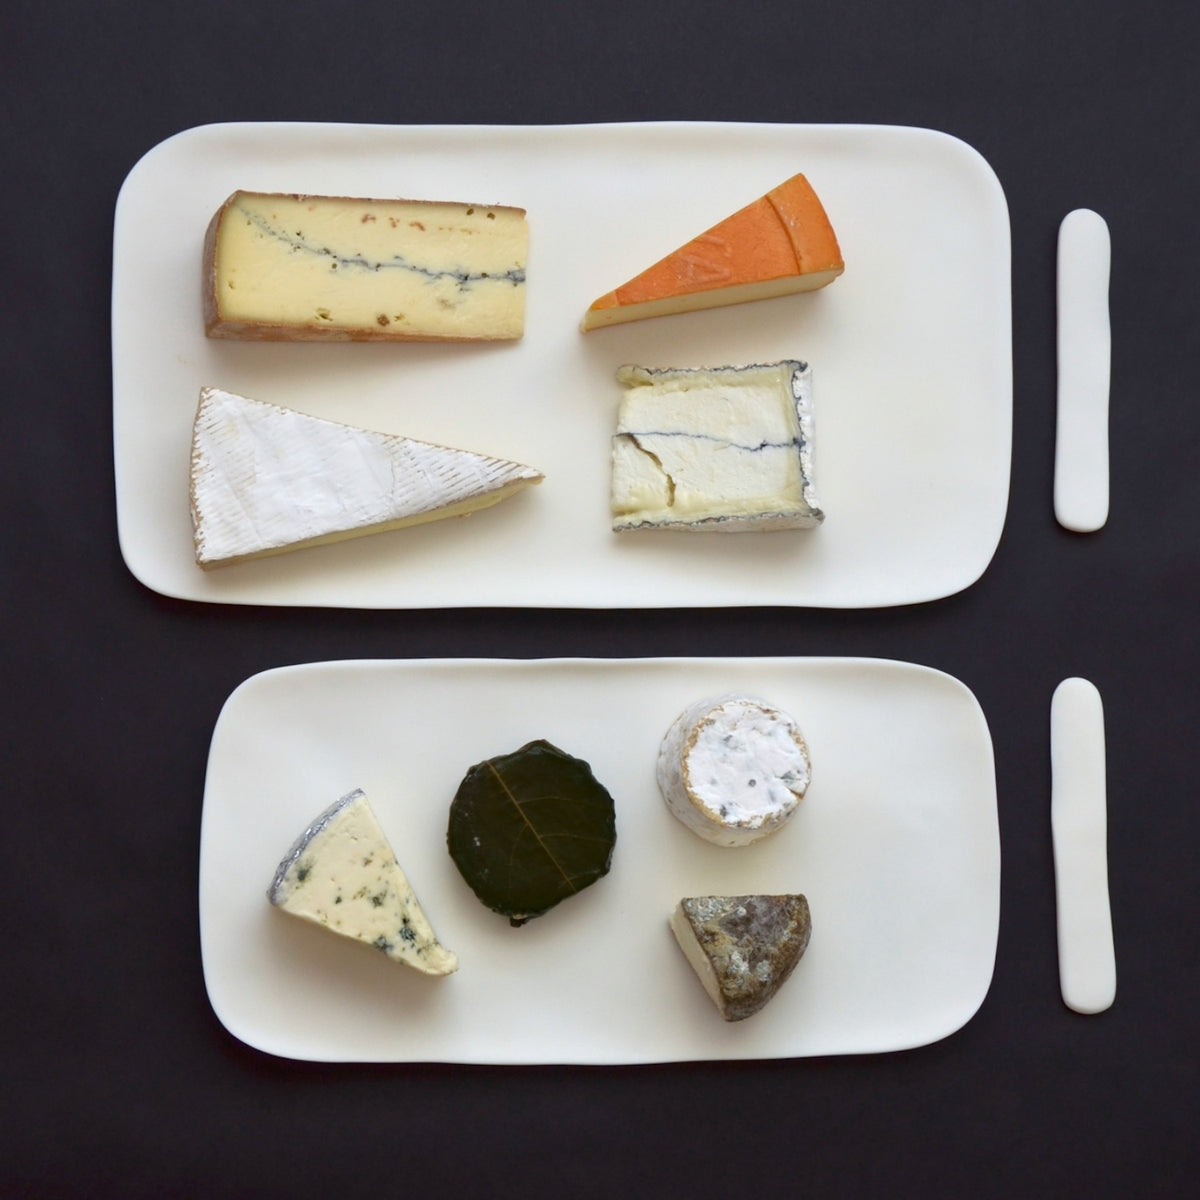 Large White Serving Board with Cheese Spreader